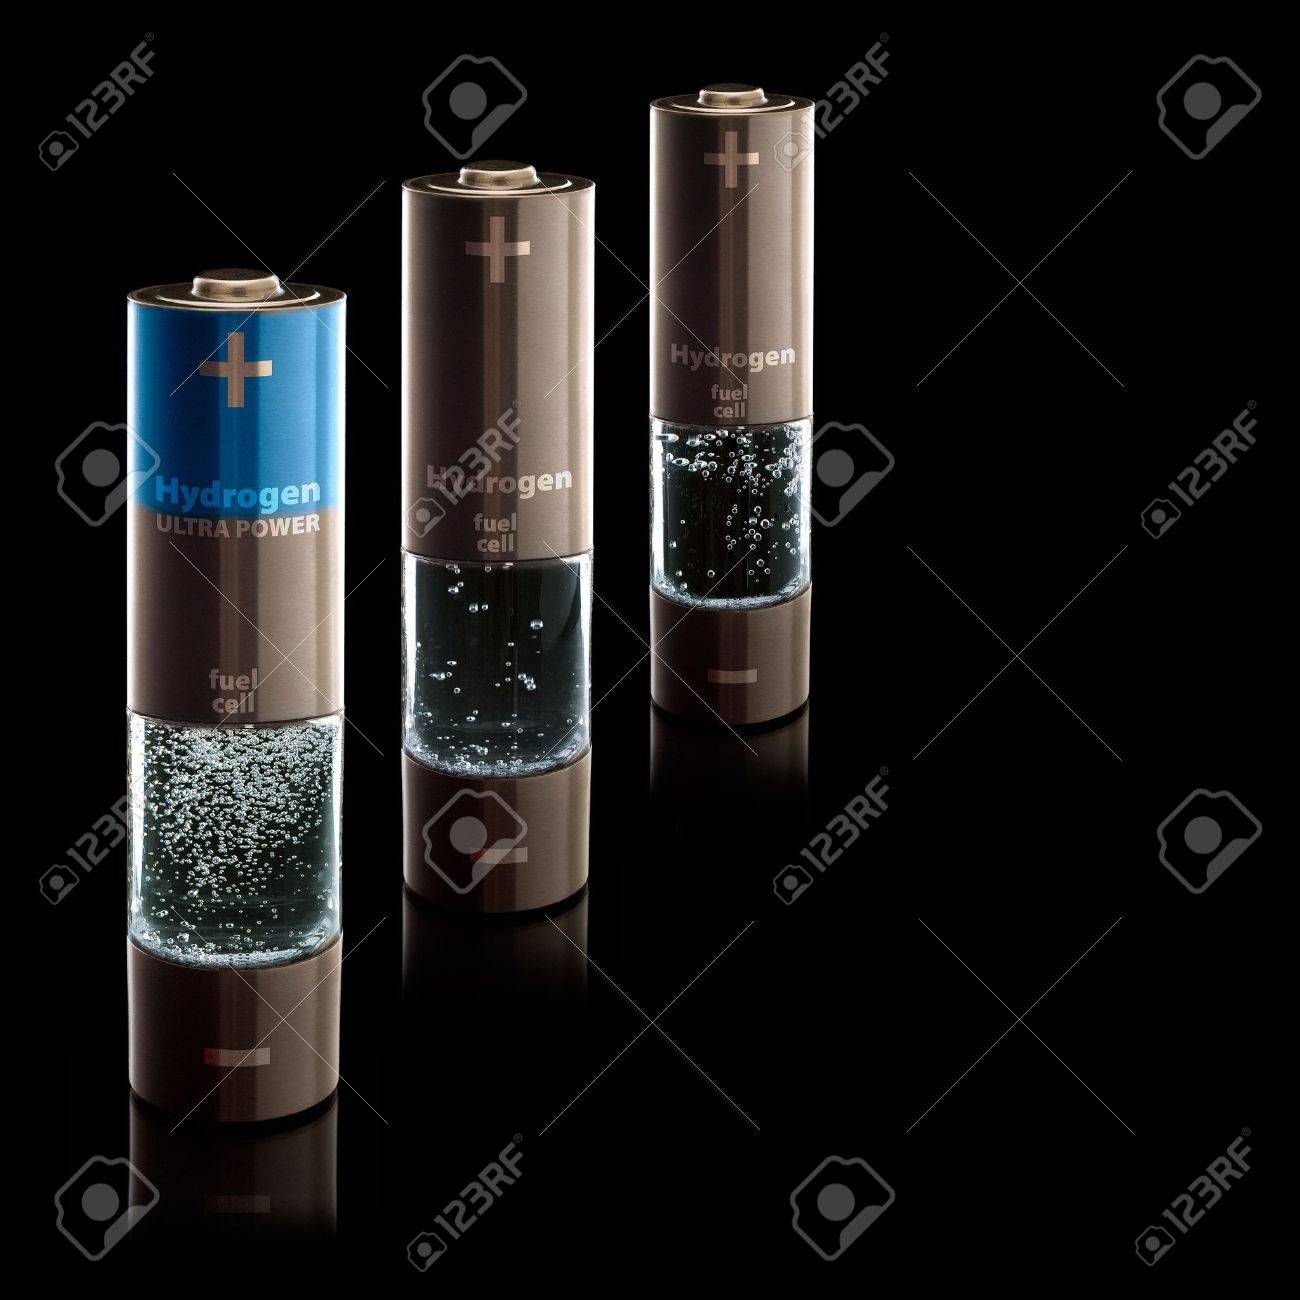 Concept for a hydrogen household fuel cells  AA batteries with